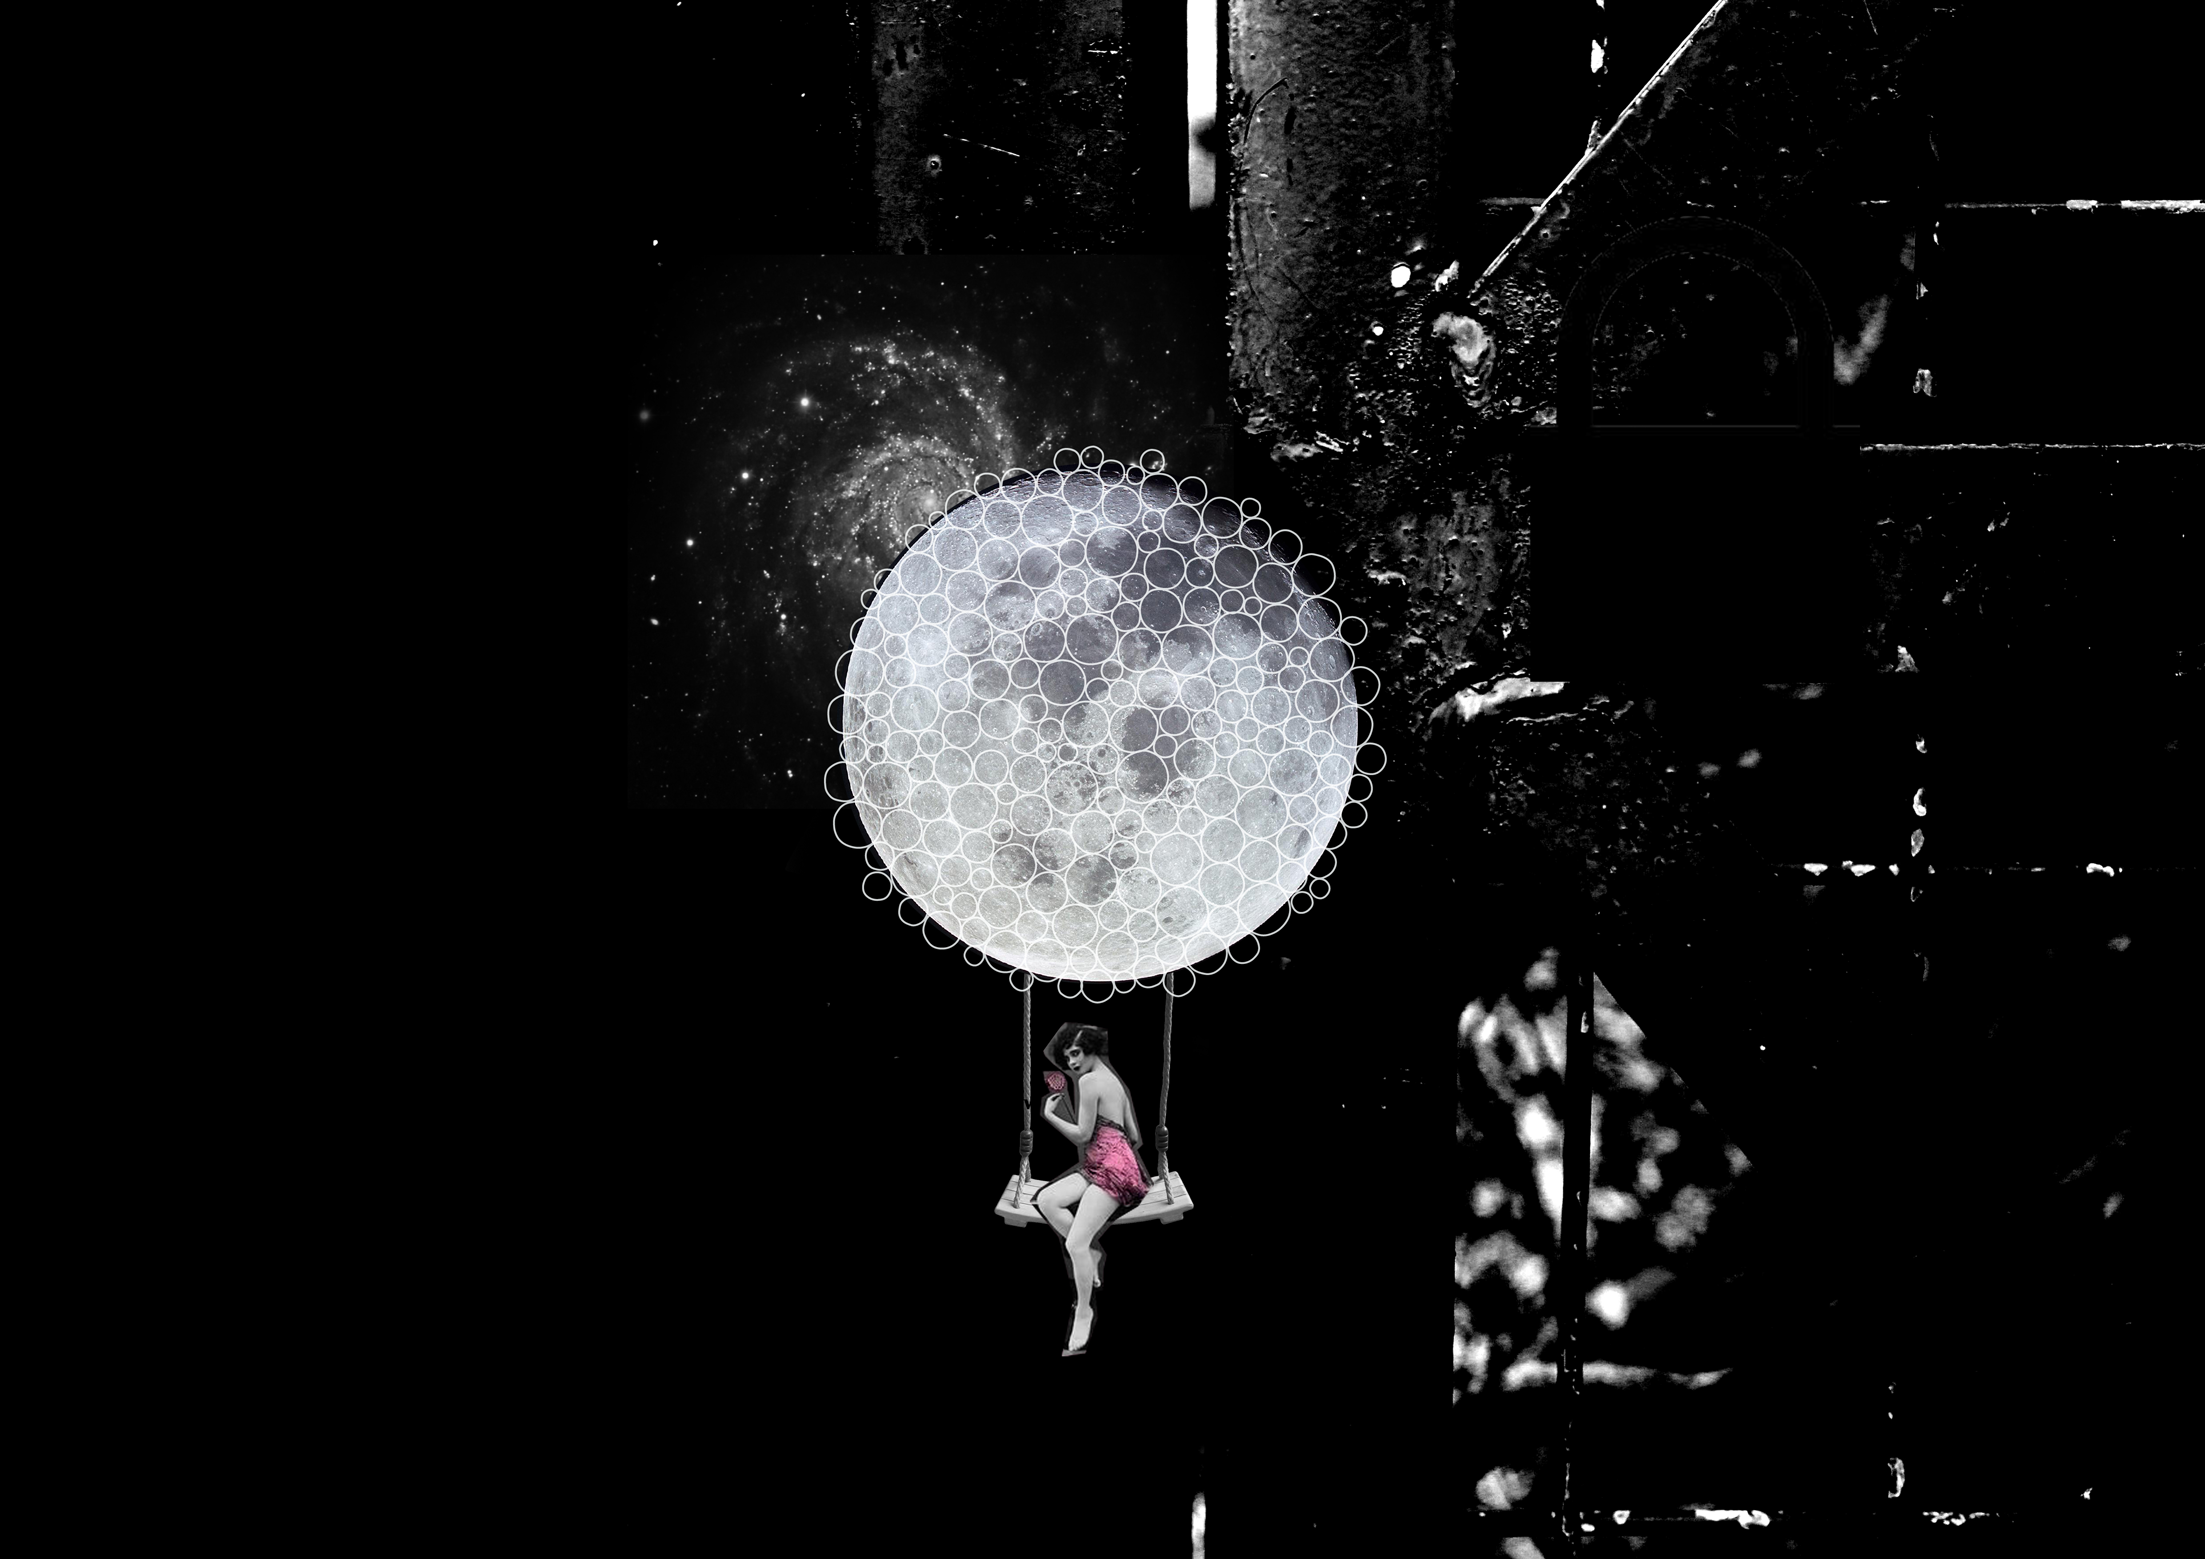 Full moon swing